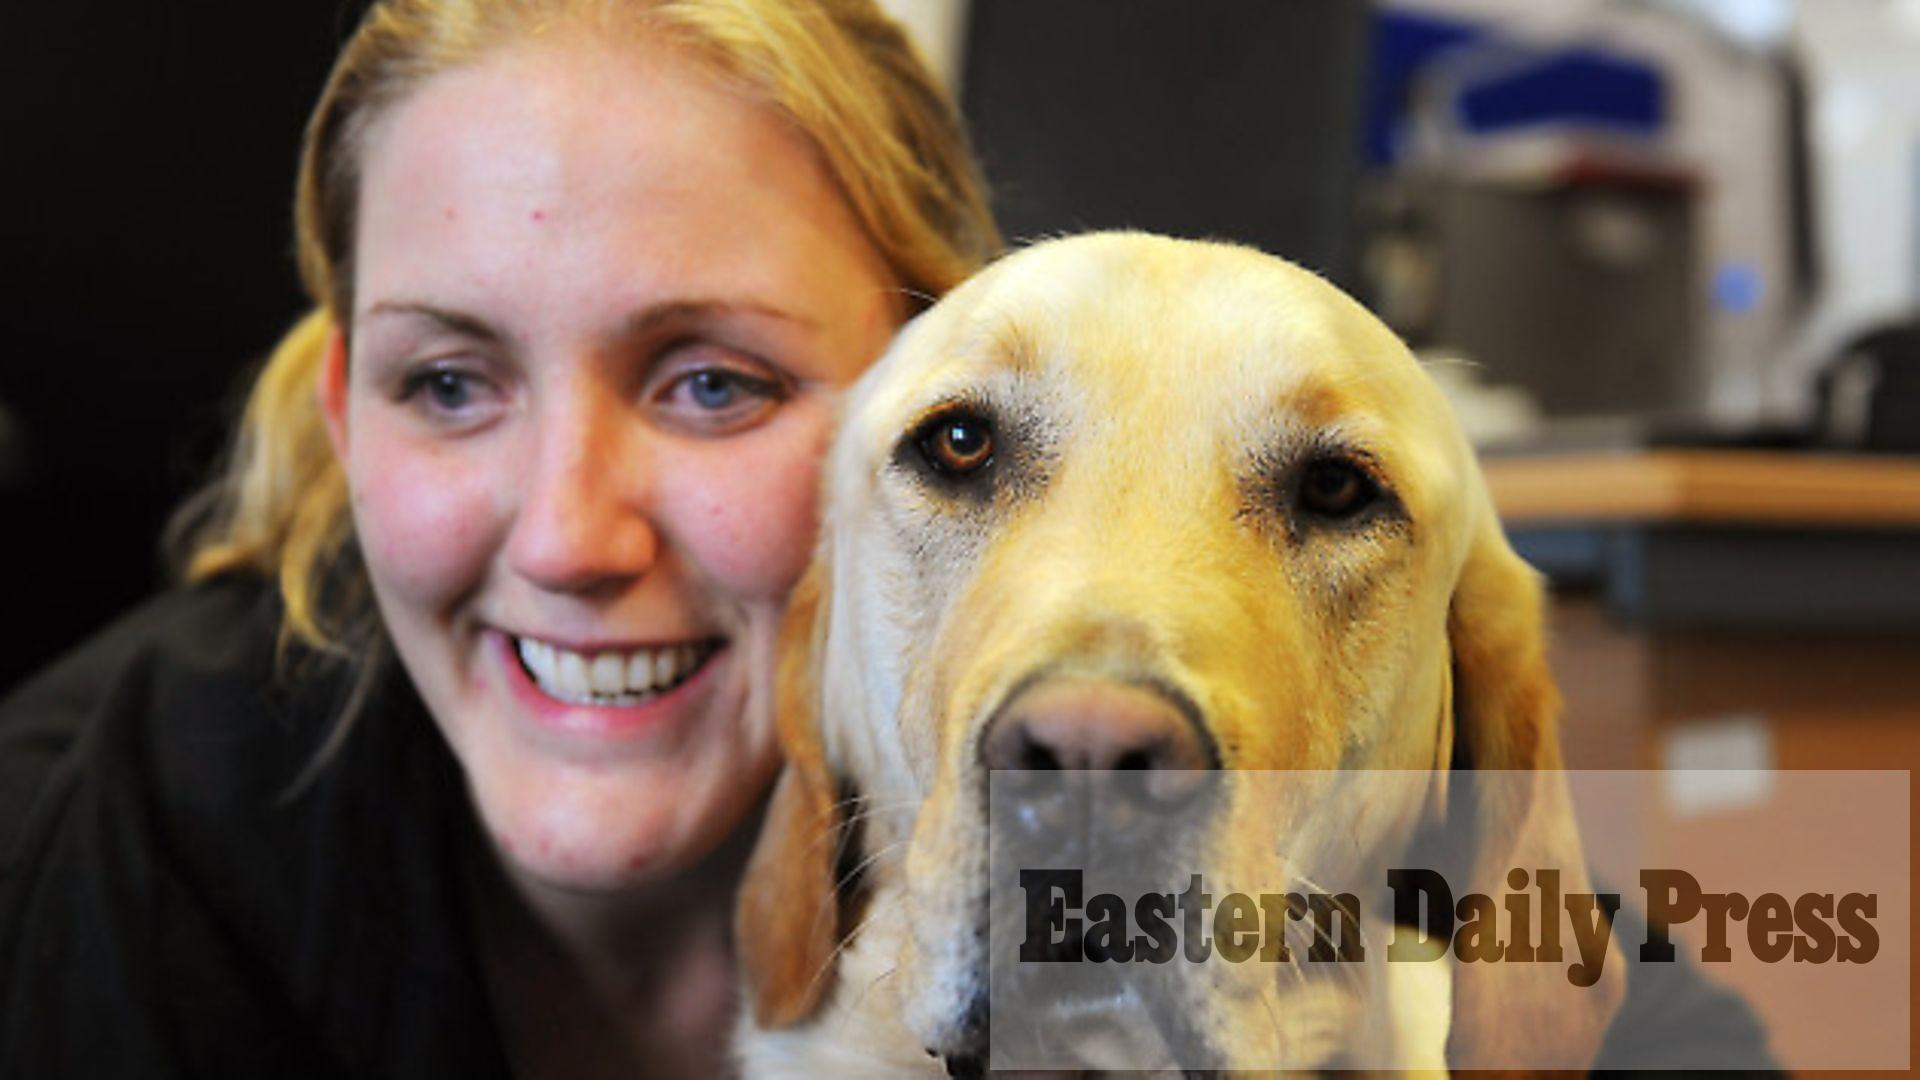 Blind woman 'humiliated' as restaurant turns her away due to her guide dog